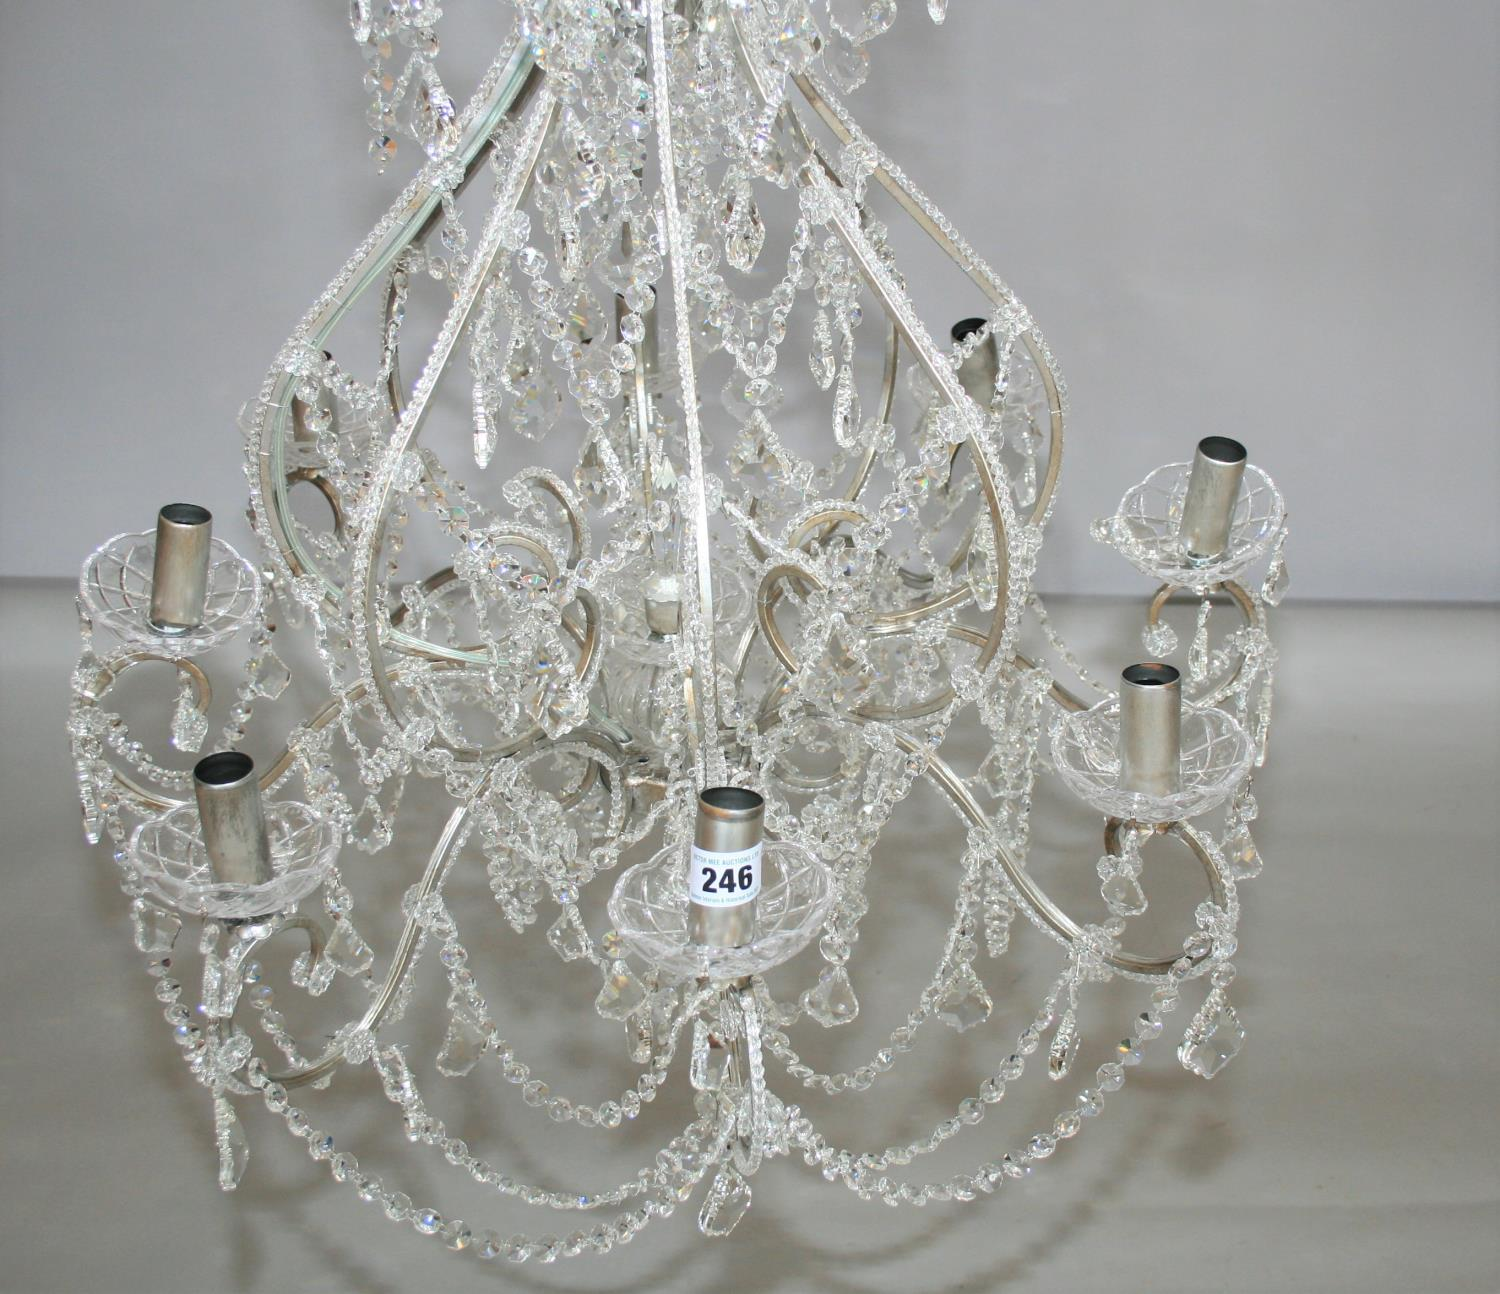 As new quality silver framed crystal 8 branch chandelier. 80W x 100H